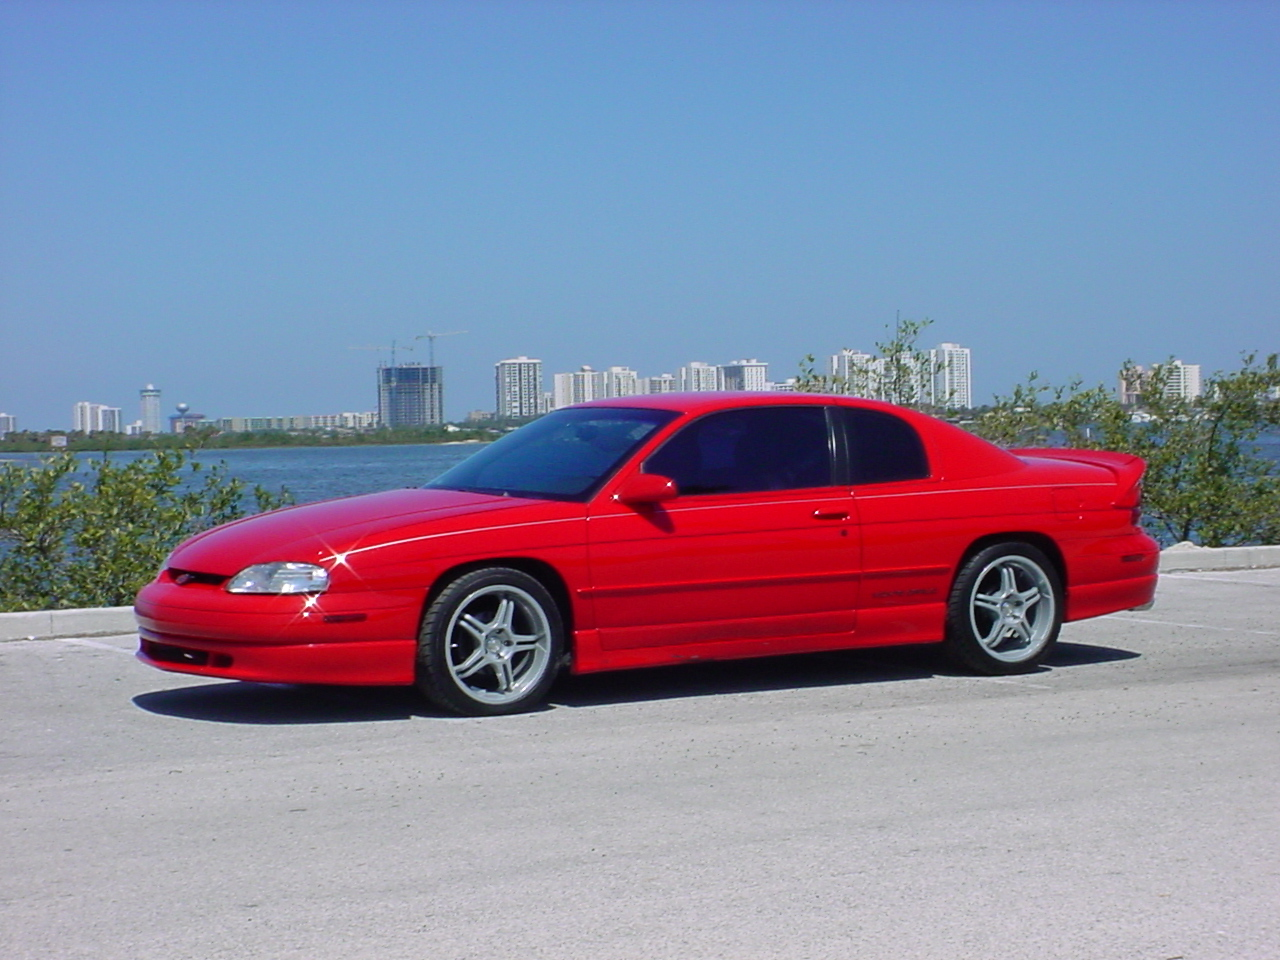 Chevrolet Monte Carlo Dr Z Coupe Pic on 1997 Chevy Lumina Z34